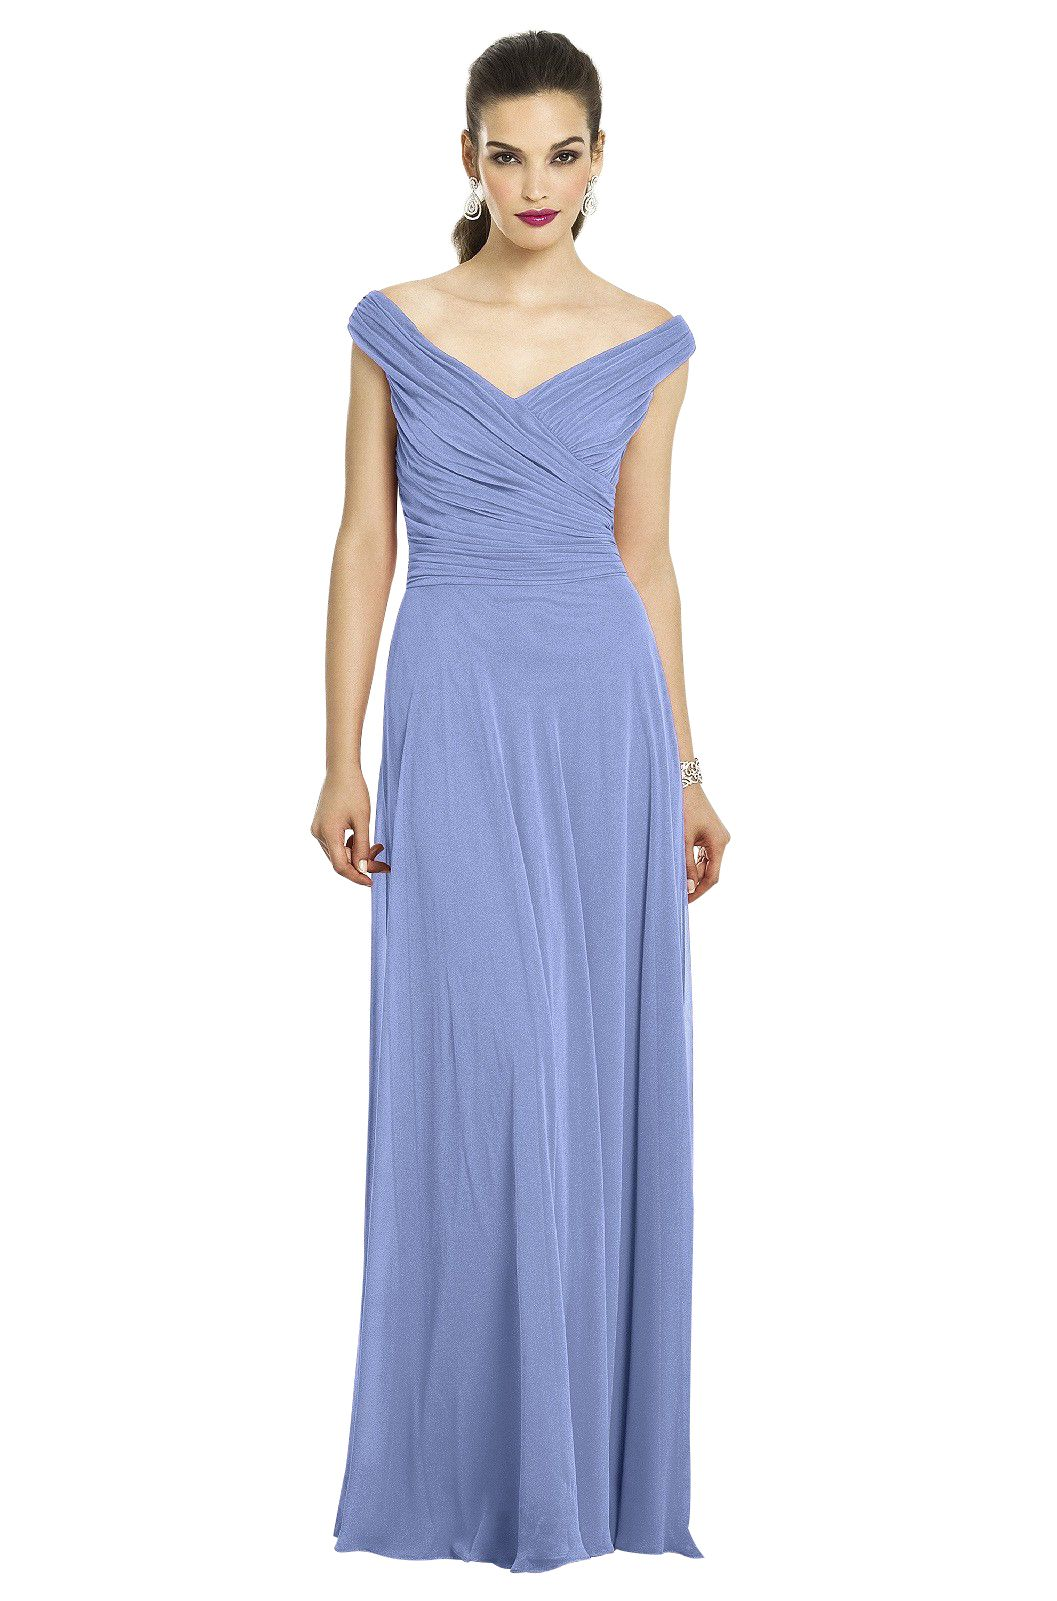 Shop after six bridesmaid dress 6667 in lux chiffon at find the perfect made to order bridesmaid dresses for your bridal party in your favorite color style and fabric at weddington ombrellifo Images